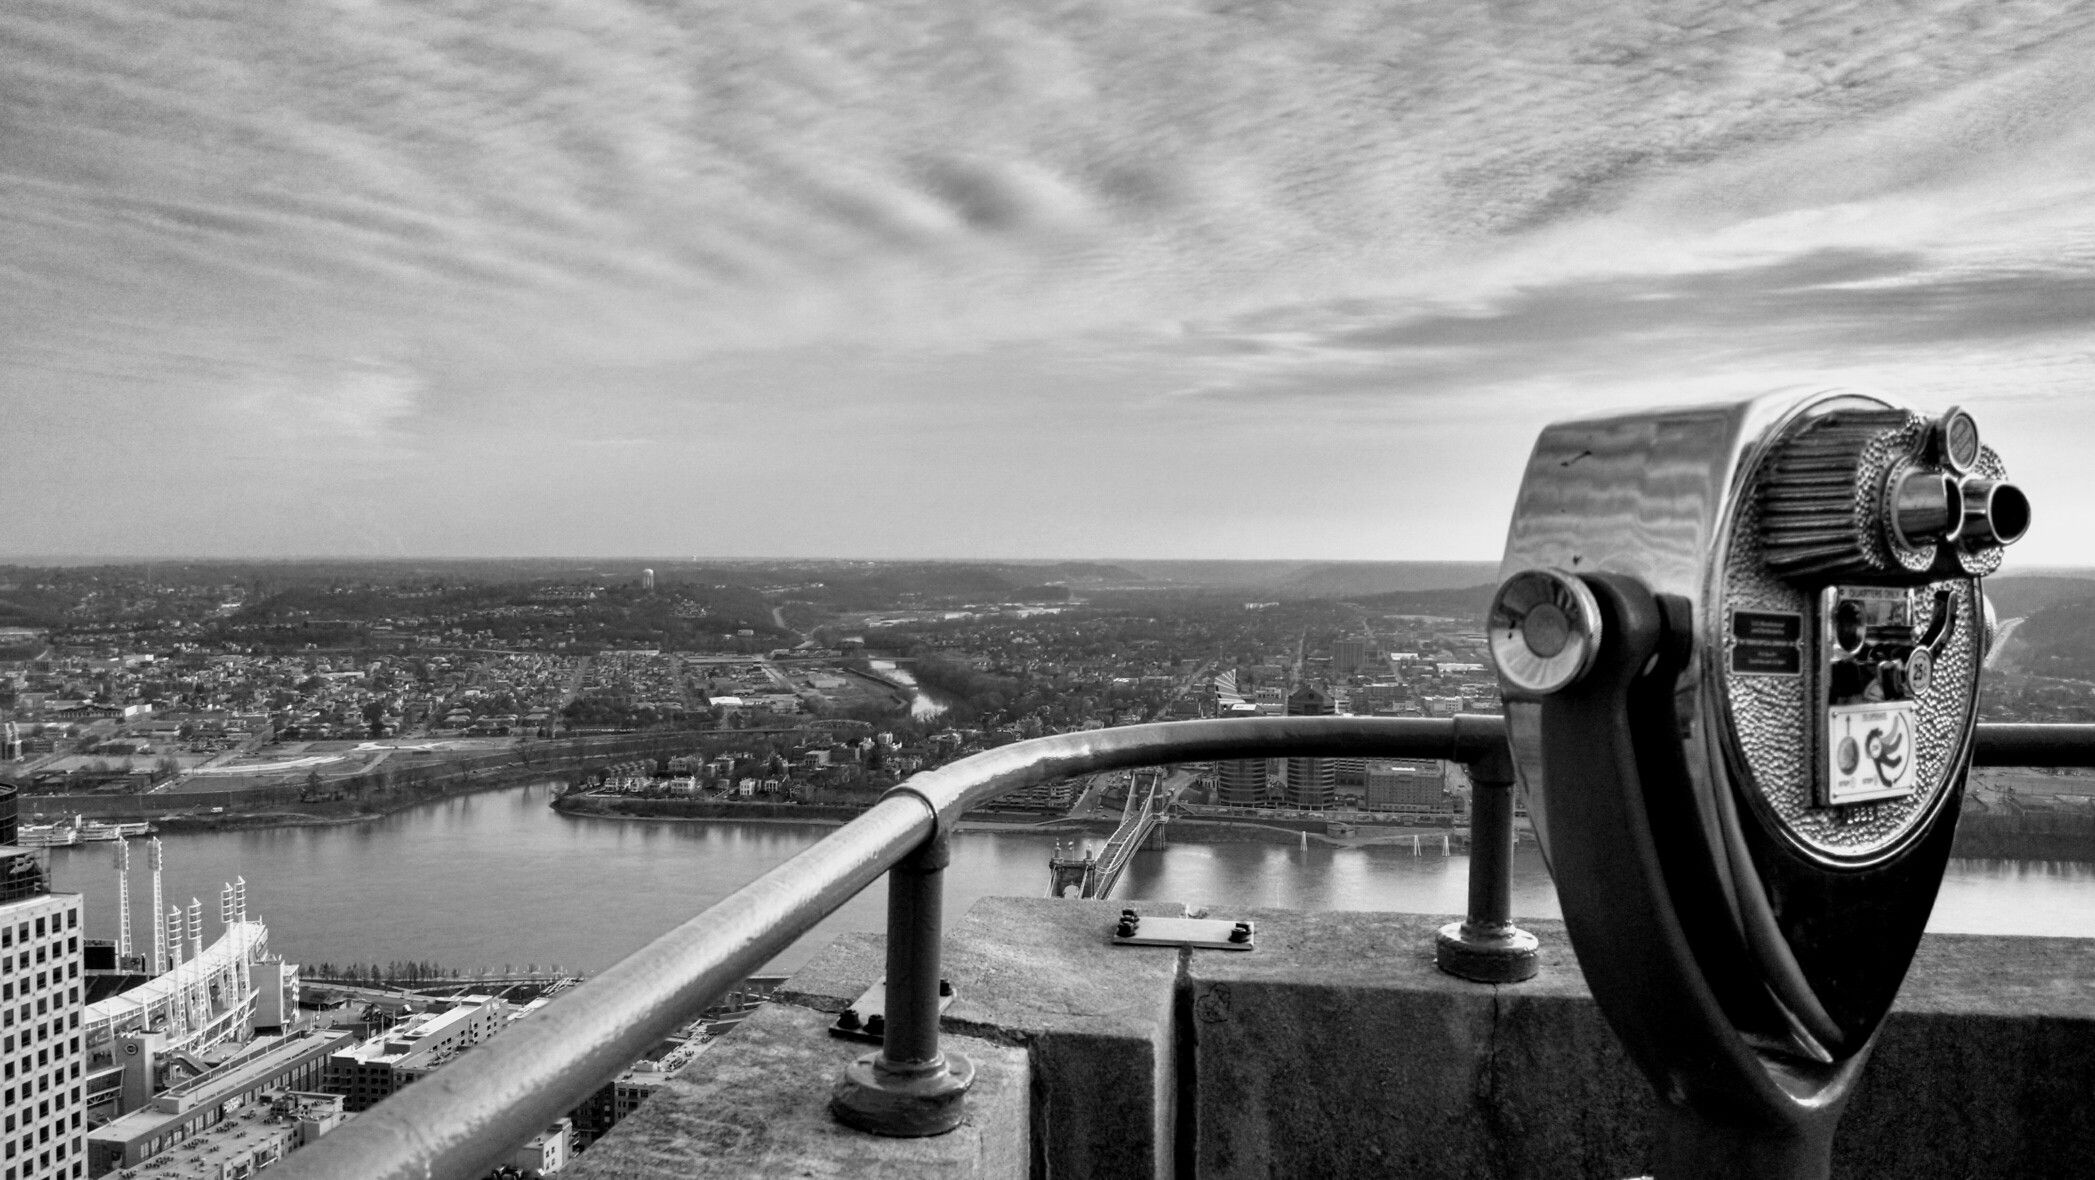 Over looking the Ohio river